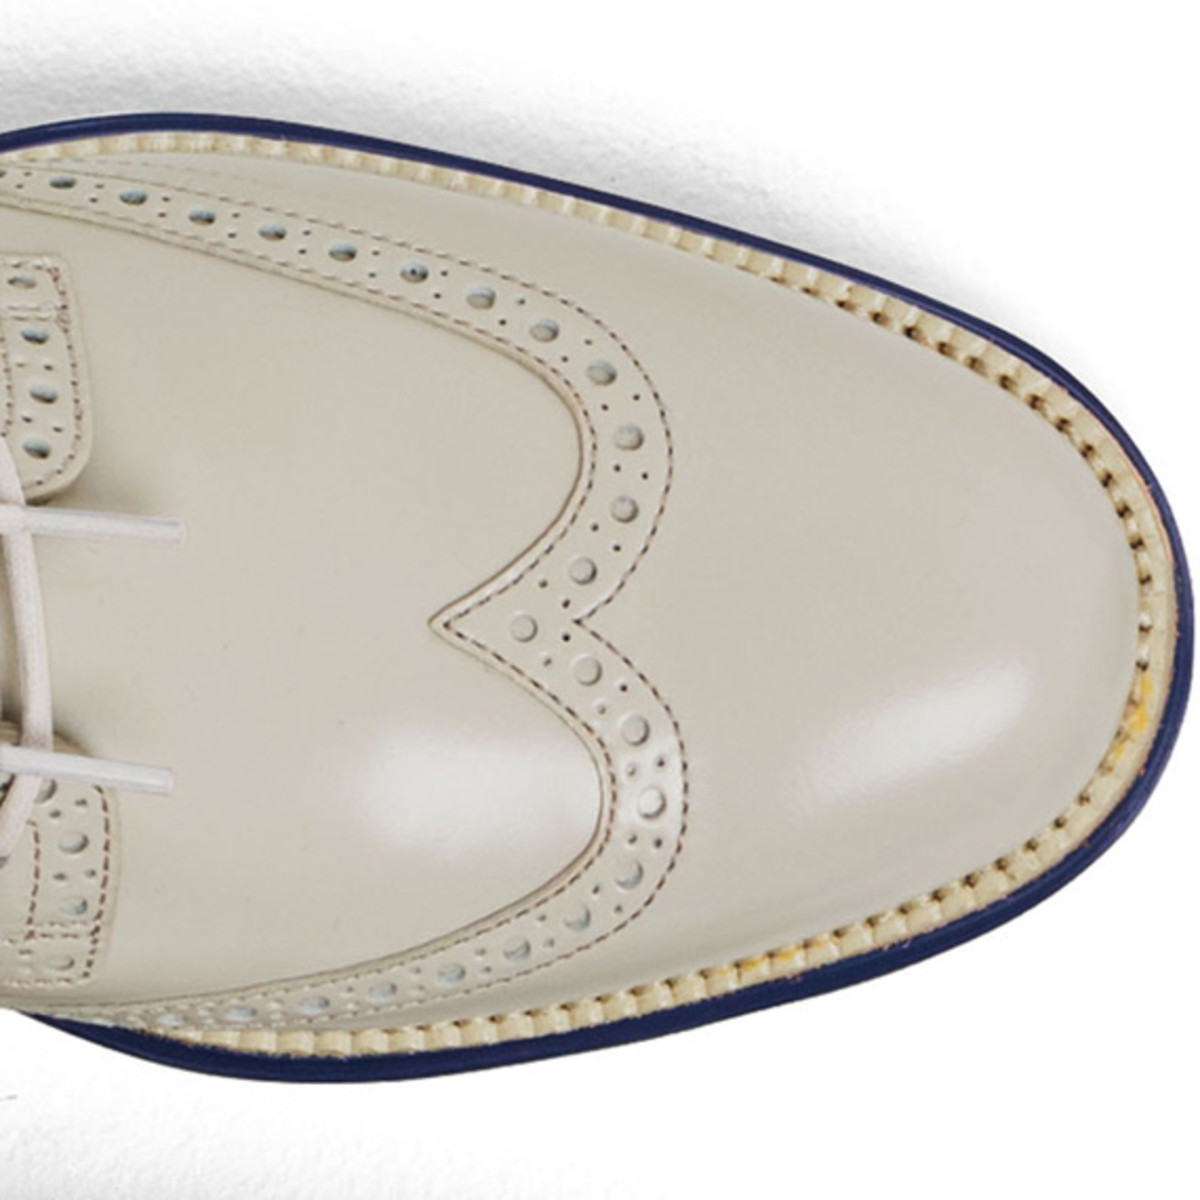 cole-haan-fragment-design-lunargrand-collection-016